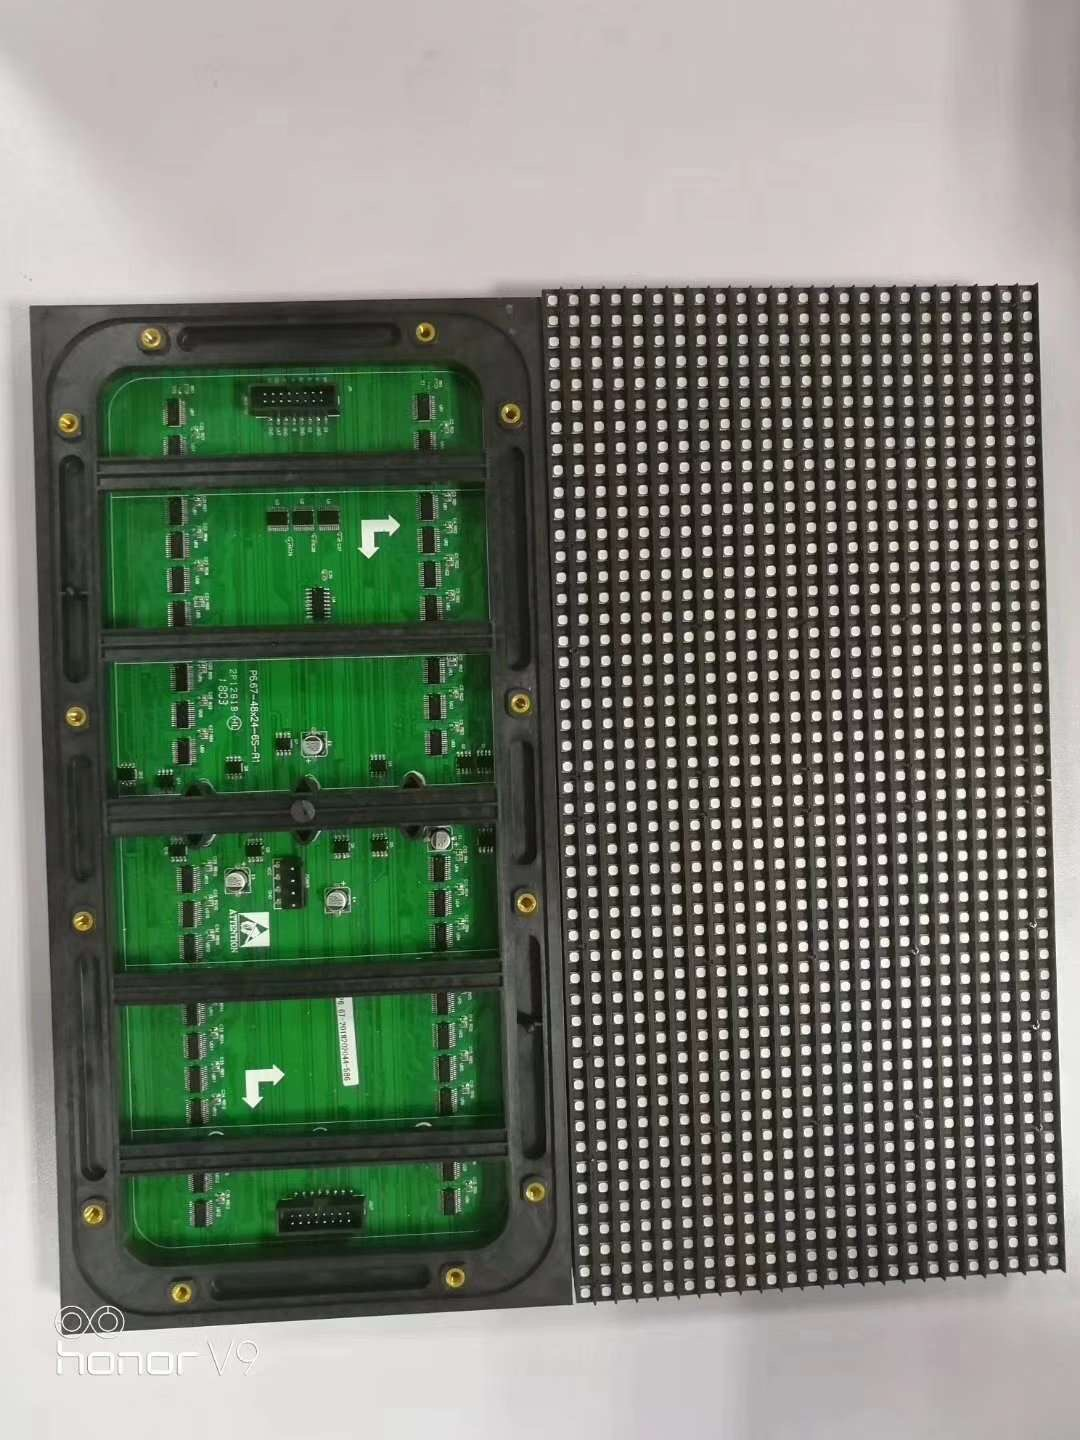 Outdoor P4 LED display module